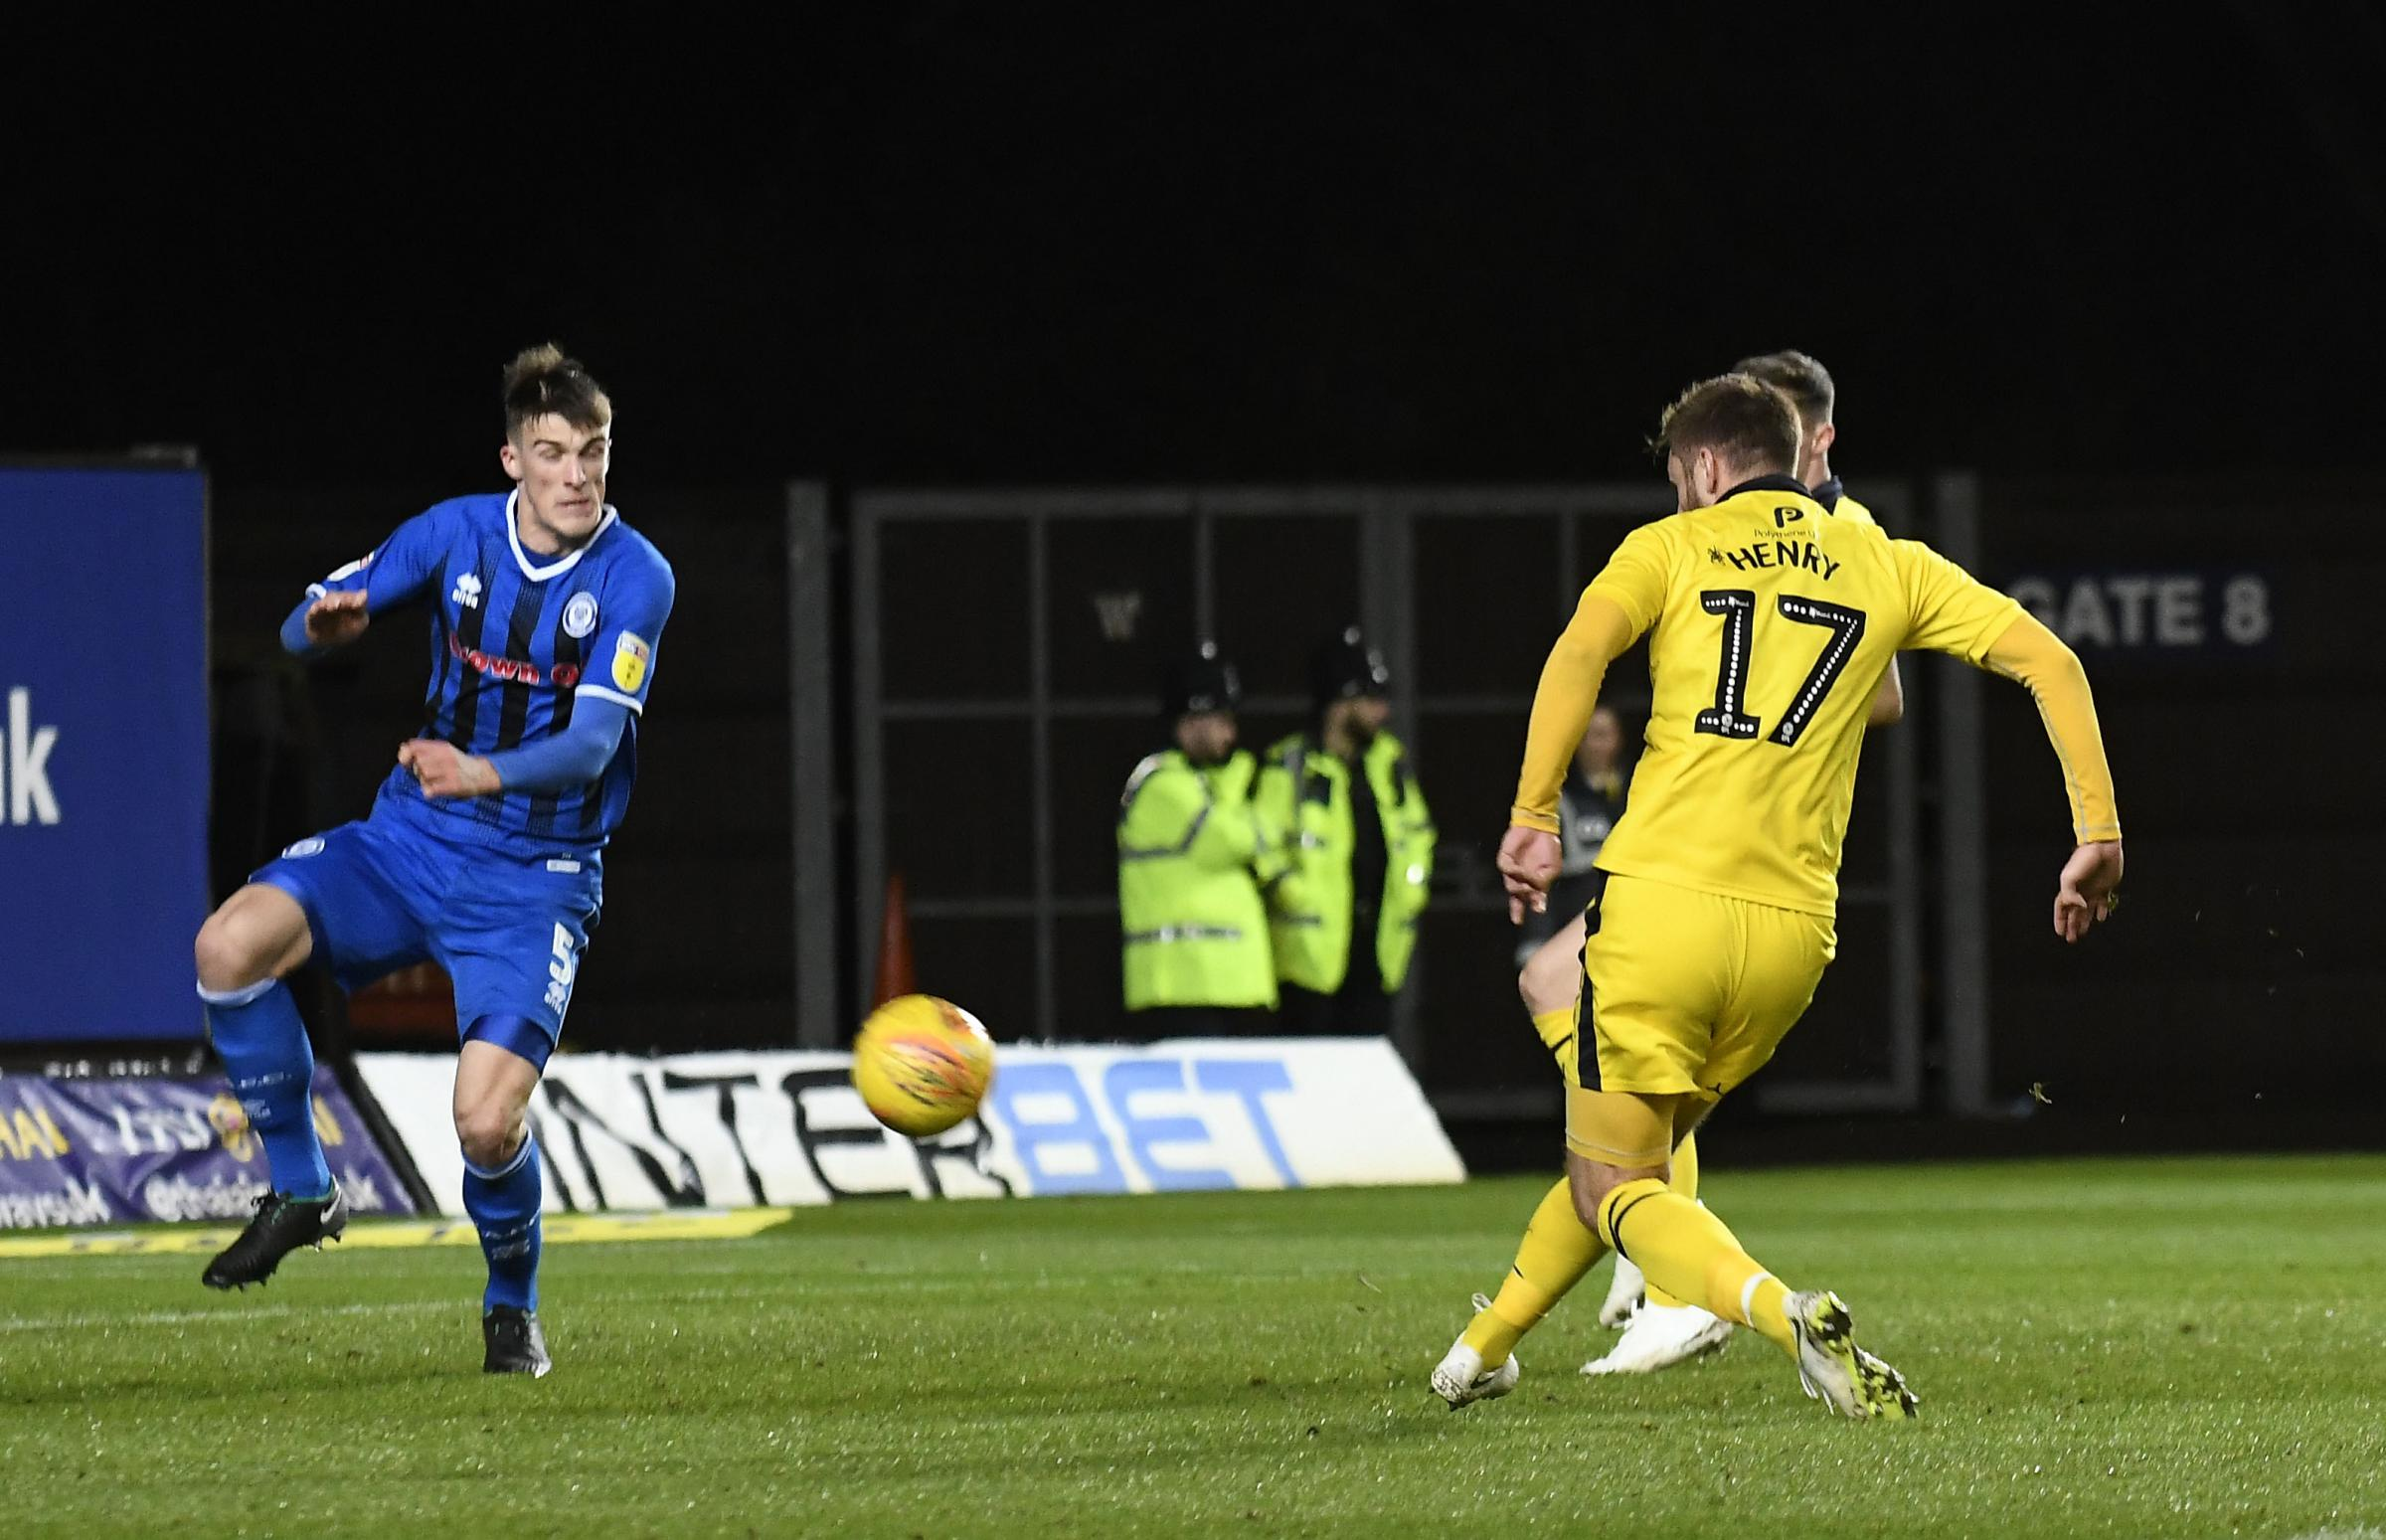 James Henry slots home Oxford United's second goal against Rochdale Picture: David Fleming